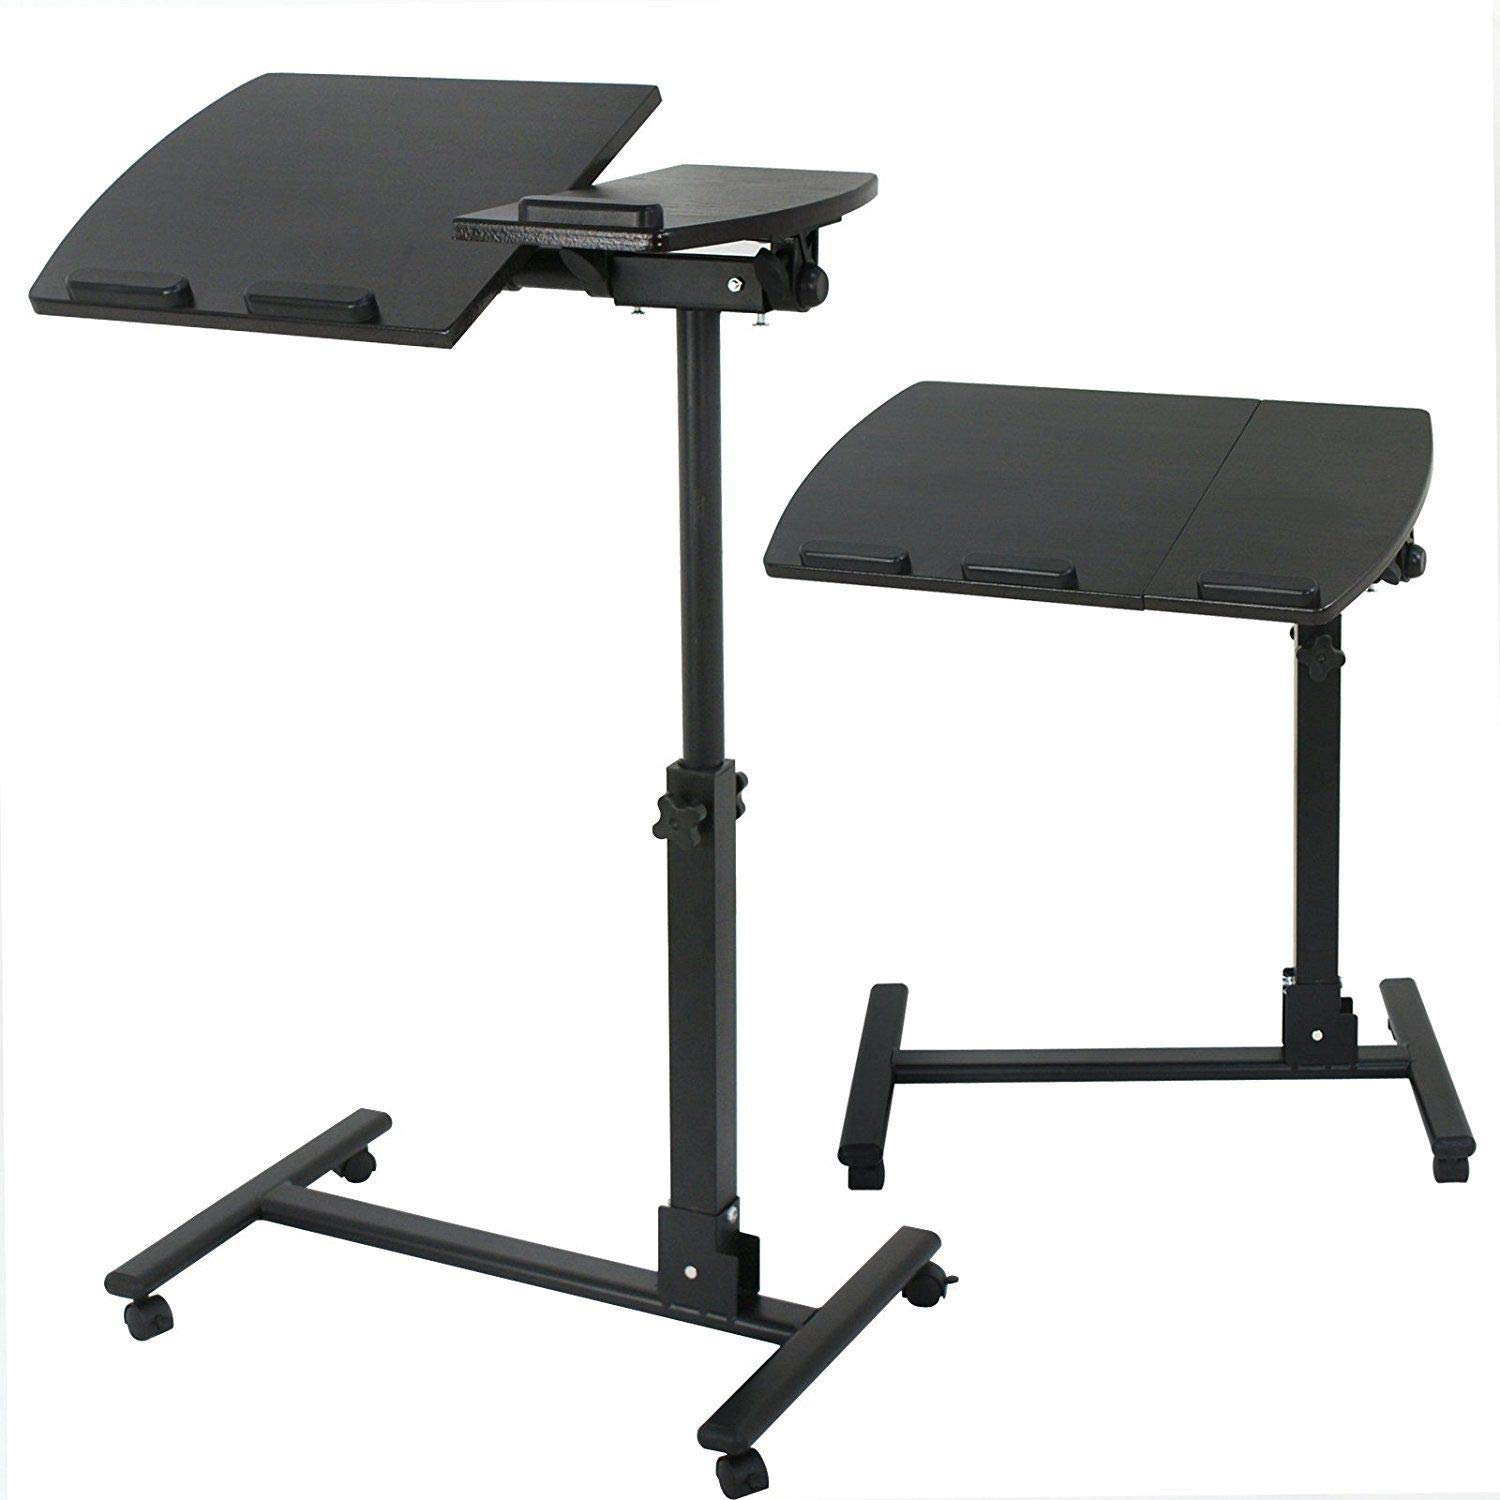 YOLO Stores - Overbed Laptop Desk Table Medical Adjustable Over Sofa/Bed/Couch Notebook Stand Swivel Trolley Sturdy